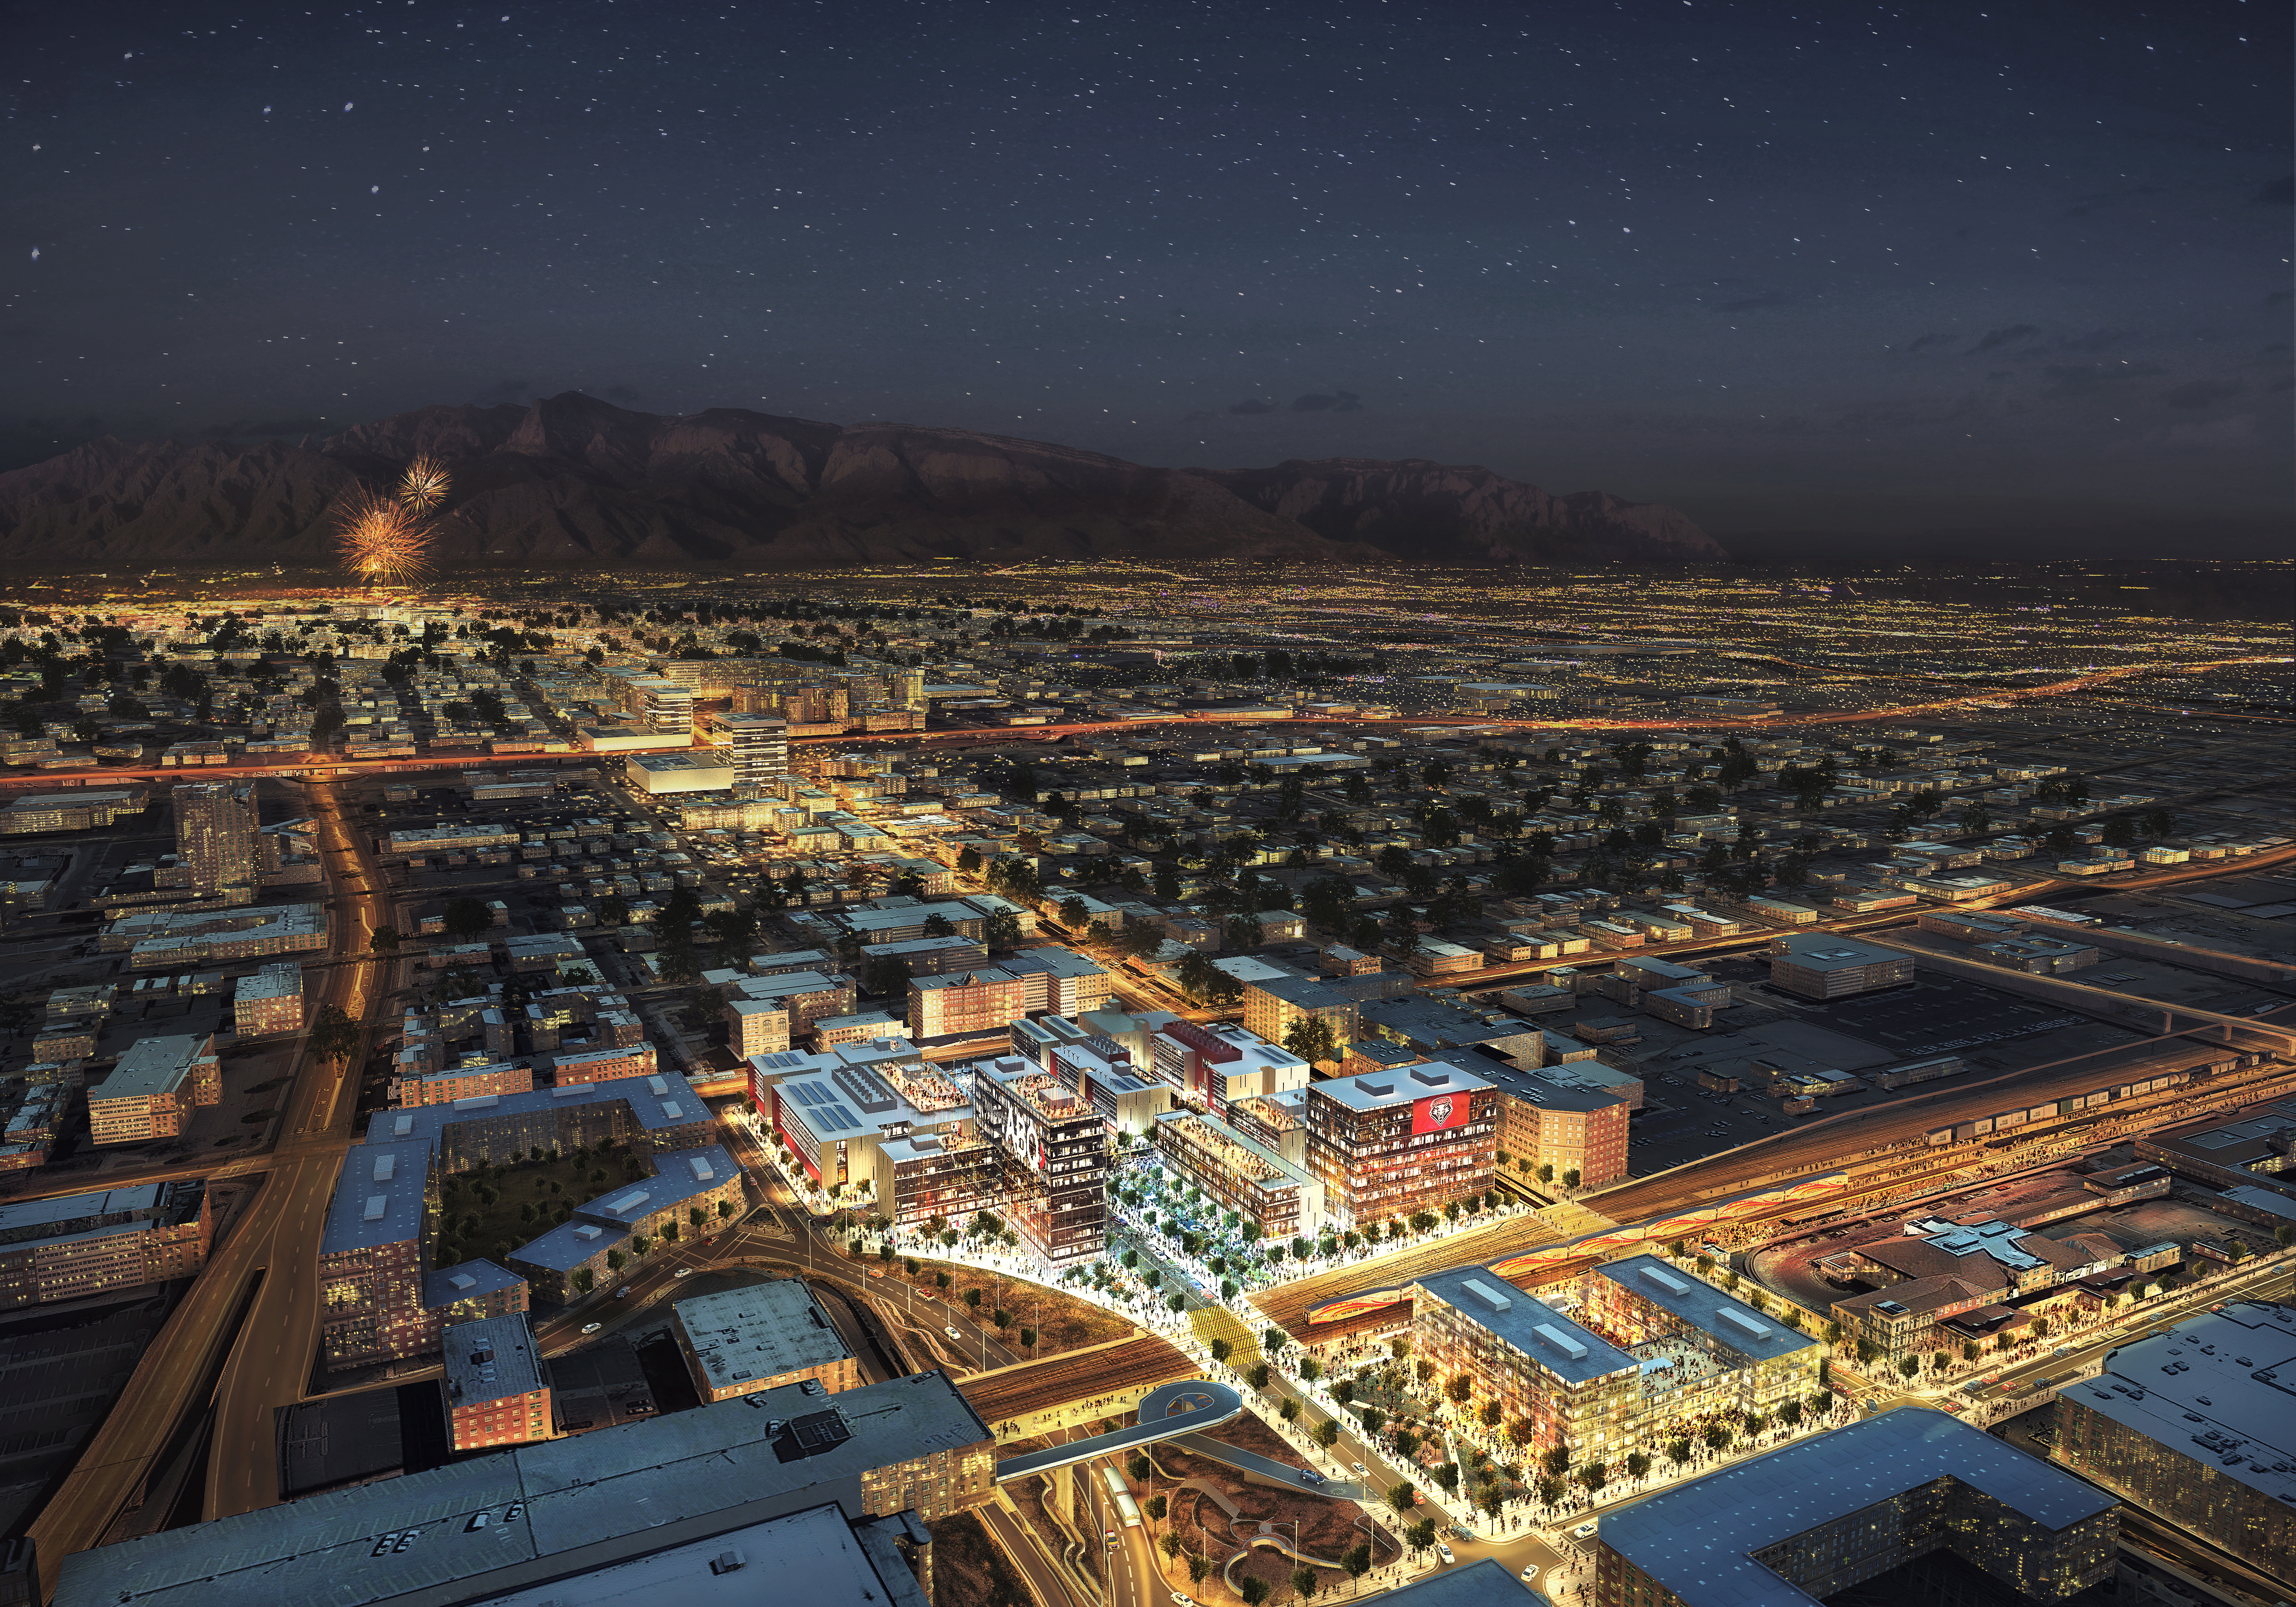 An innovative mixed-use urban development plan connects the University of New Mexico with Albuquerque's downtown to create a new-world research corridor